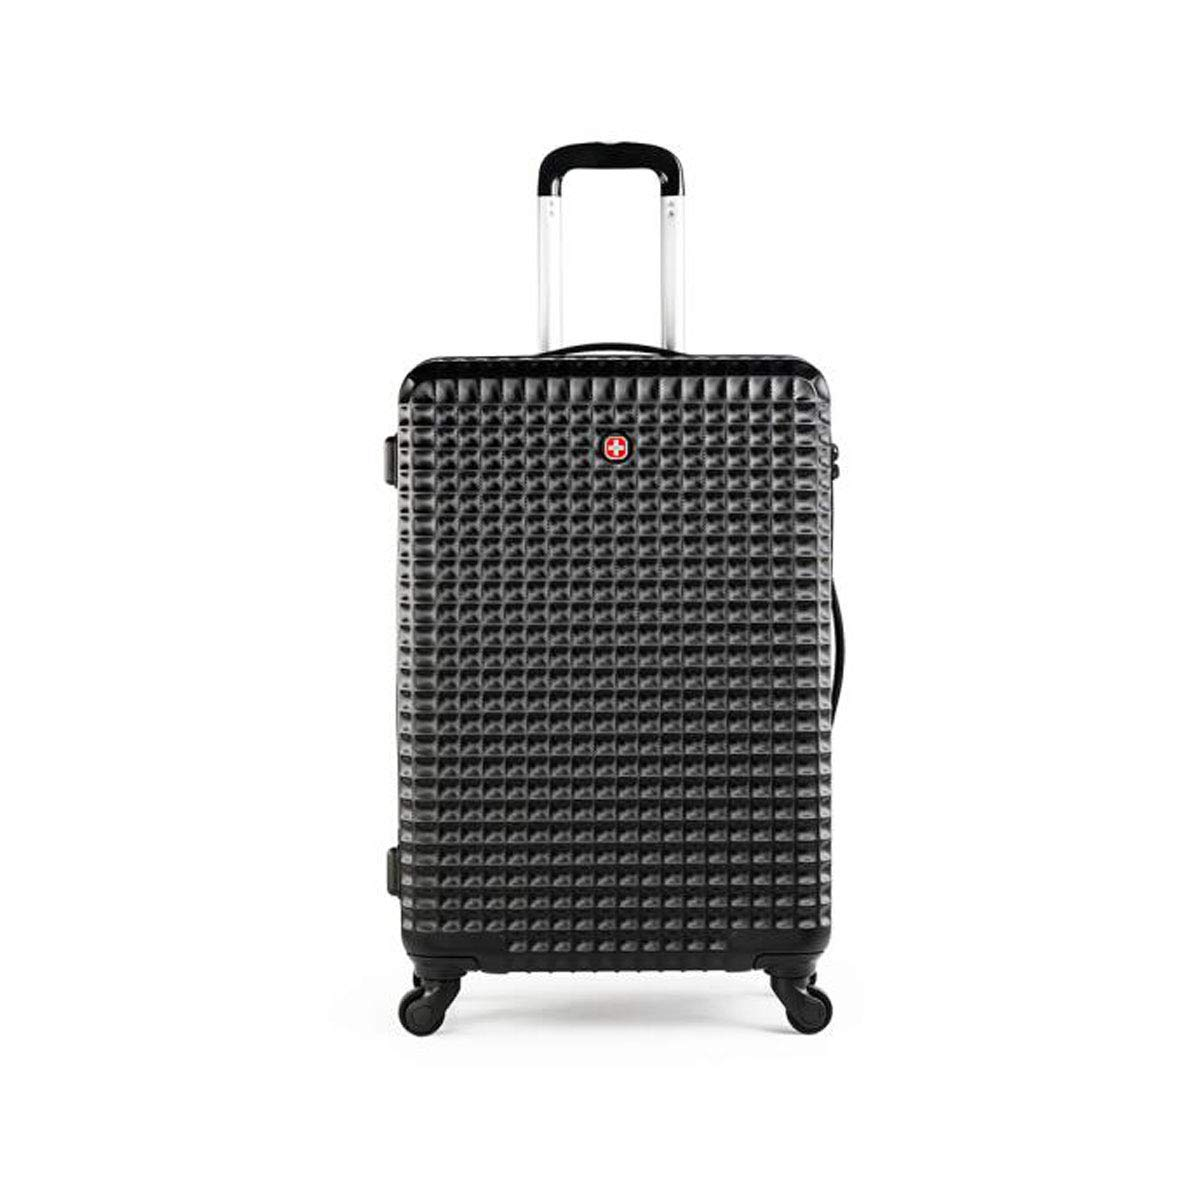 cm Mixed Travel Luggage 2 Sets of Durable Lightweight Hard Shell Suitcase Size Black Suitcase for Color : Black, Size : 201029 inch 482572